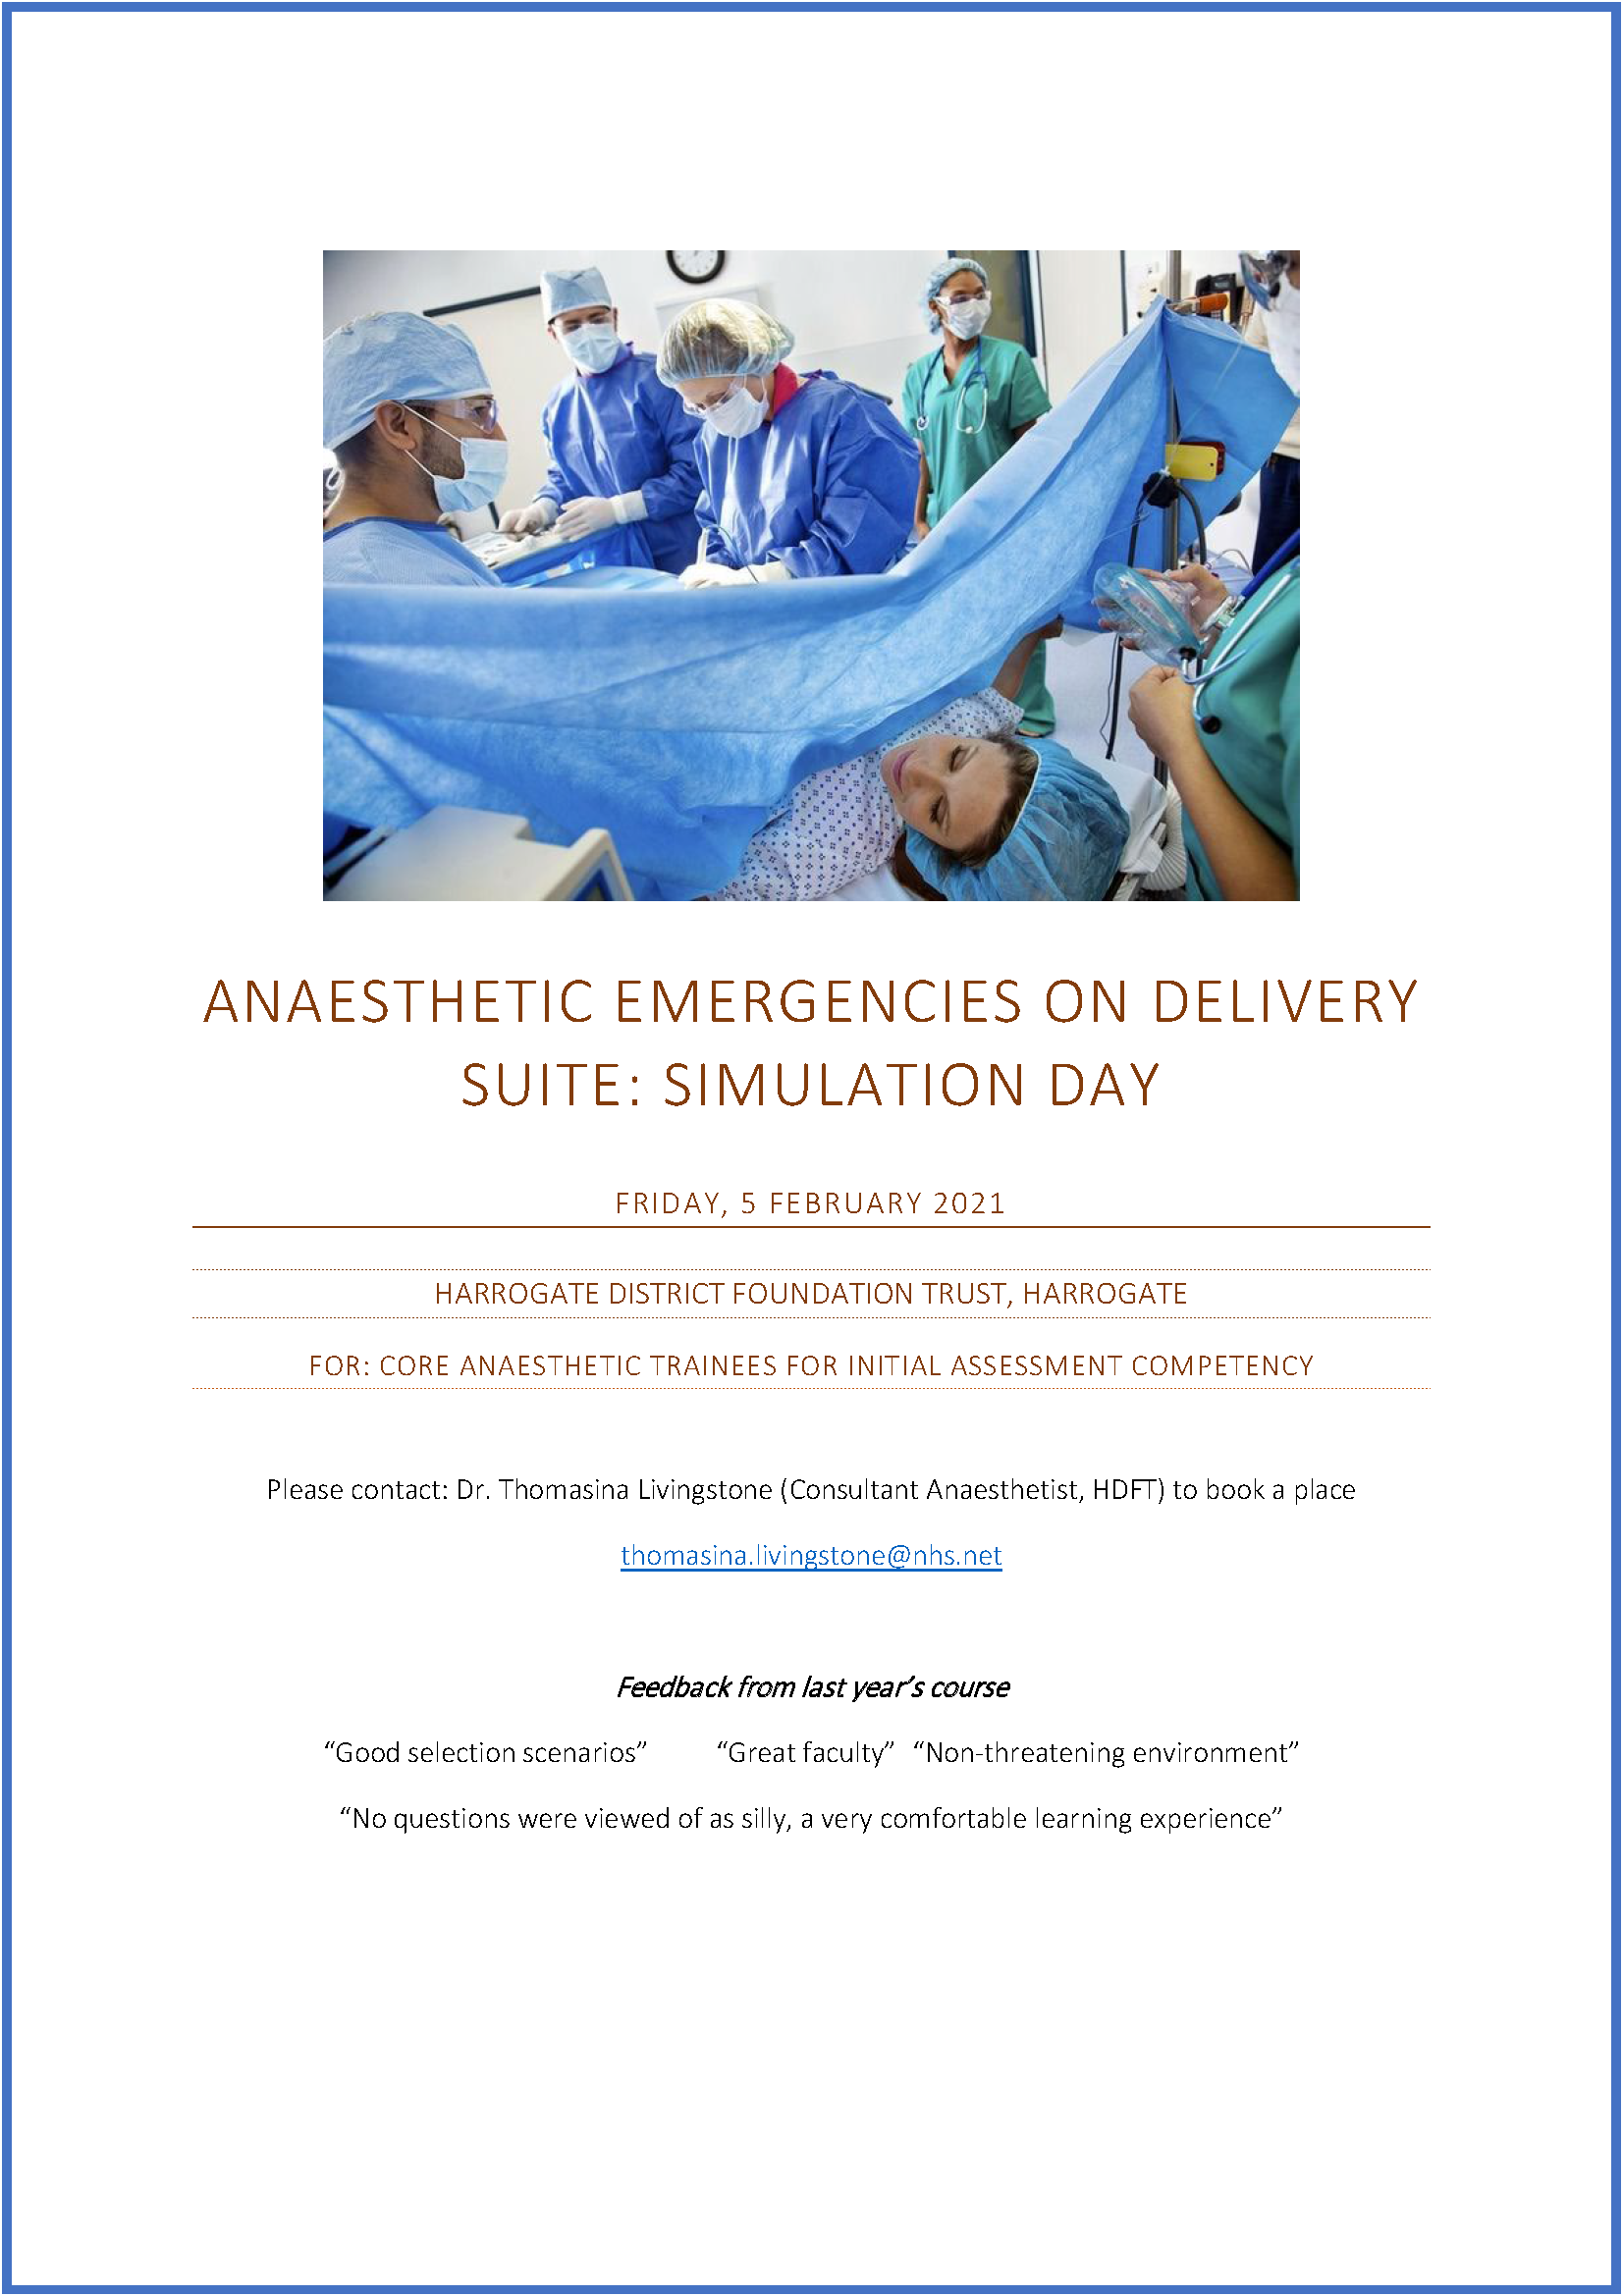 poster_anaesthetic_emergencies_delivery_suite_2021.png